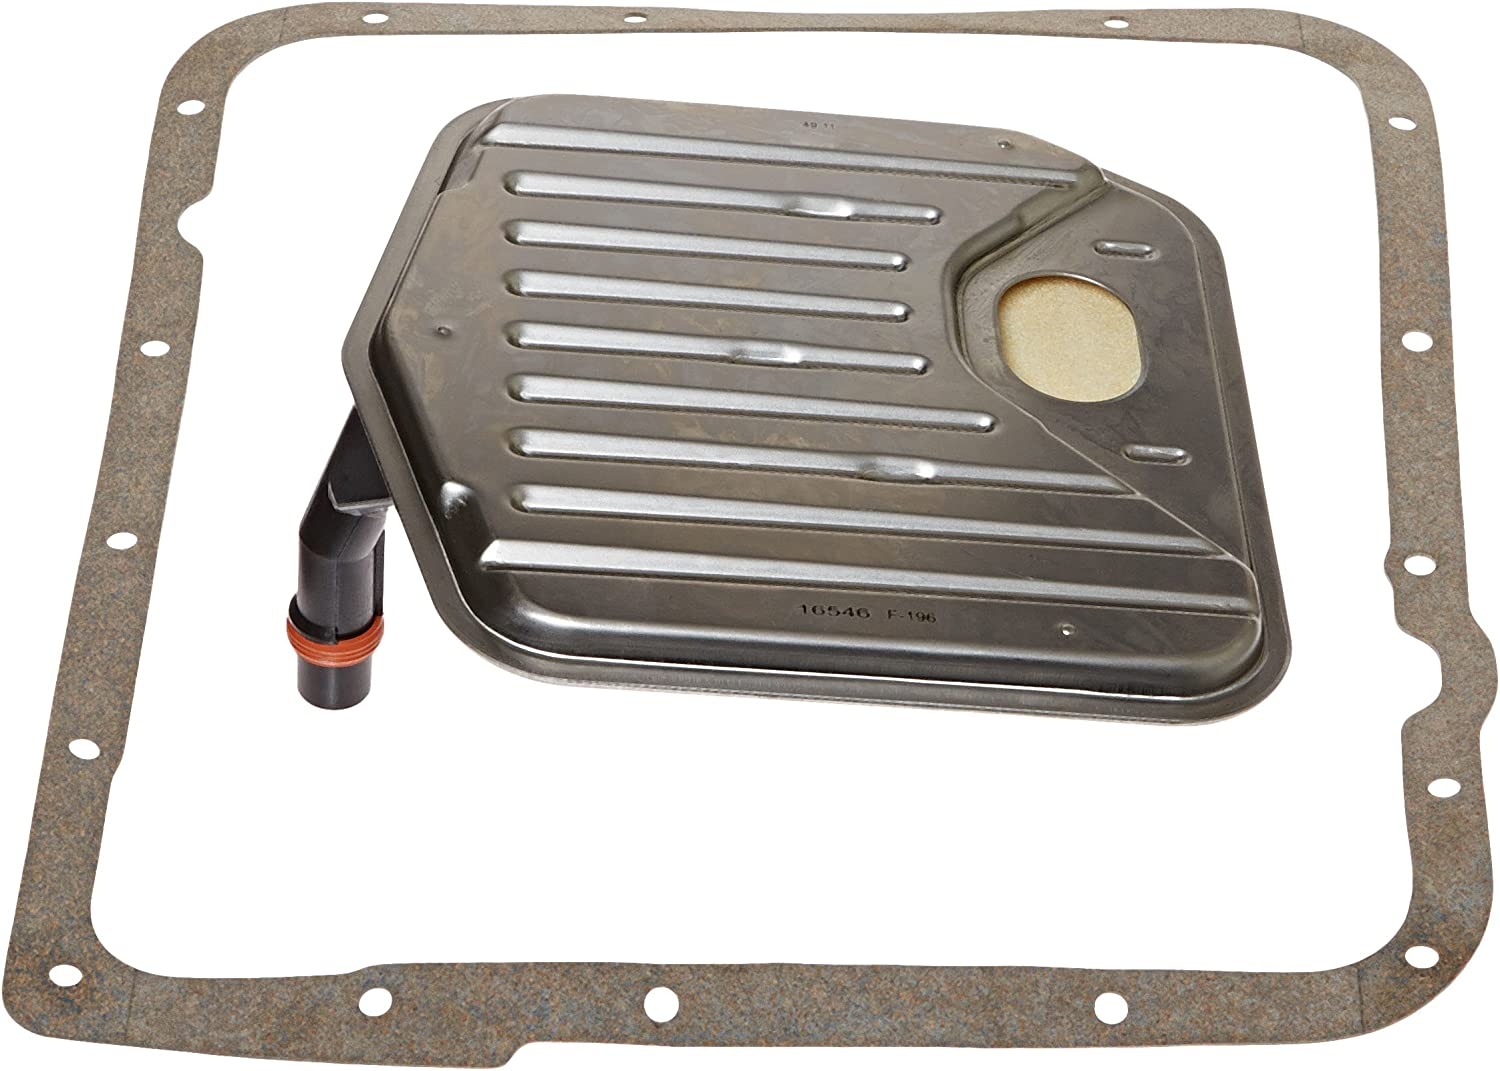 Purolator P1195 Special sale We OFFer at cheap prices item Transmission Filter